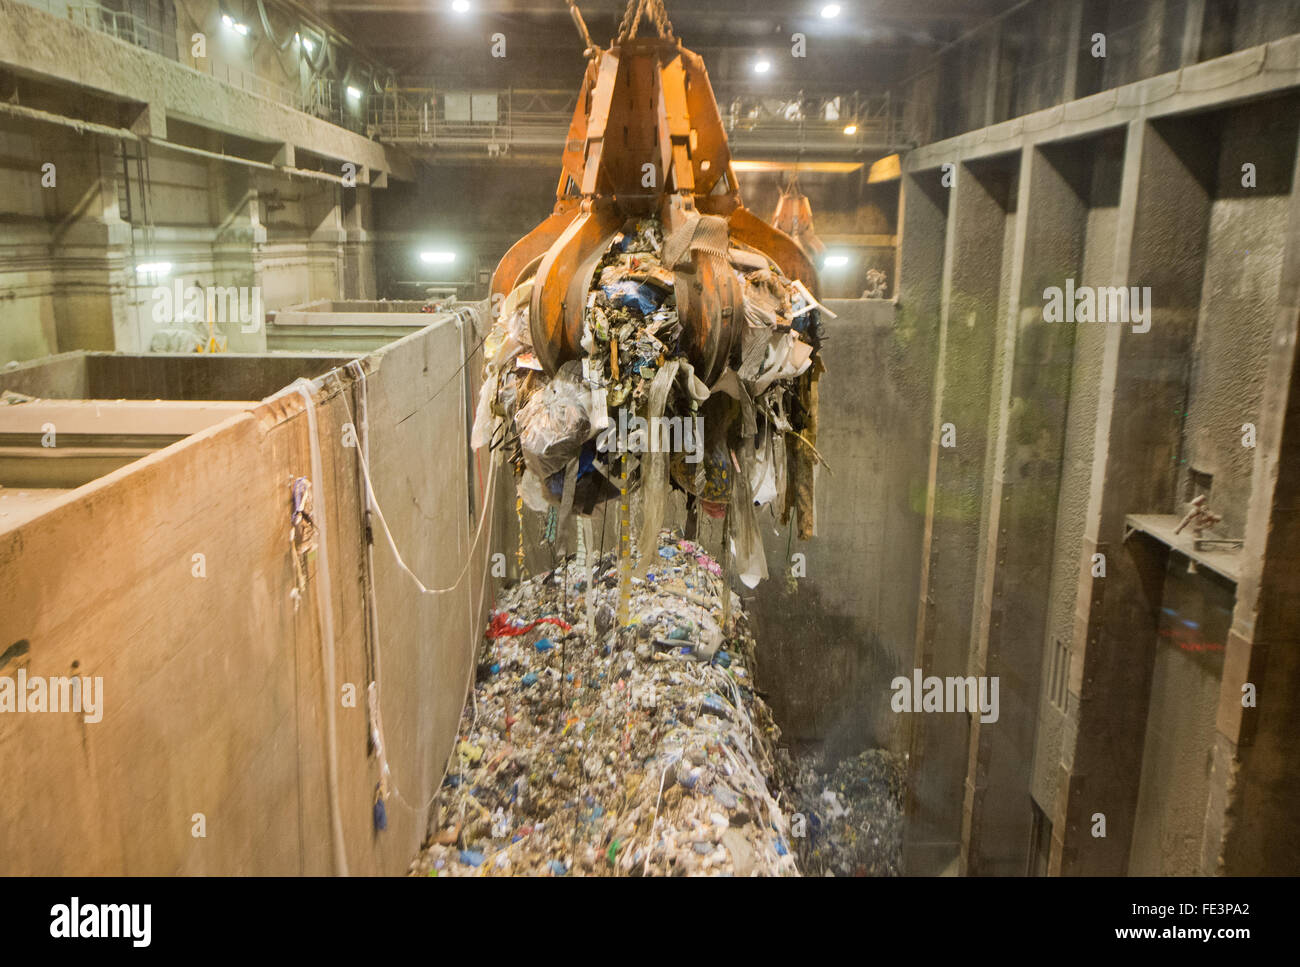 Hanover, Germany. 04th Feb, 2016. A crane transports waste to an 'EEW Energy from Waste' waste burning facility Stock Photo